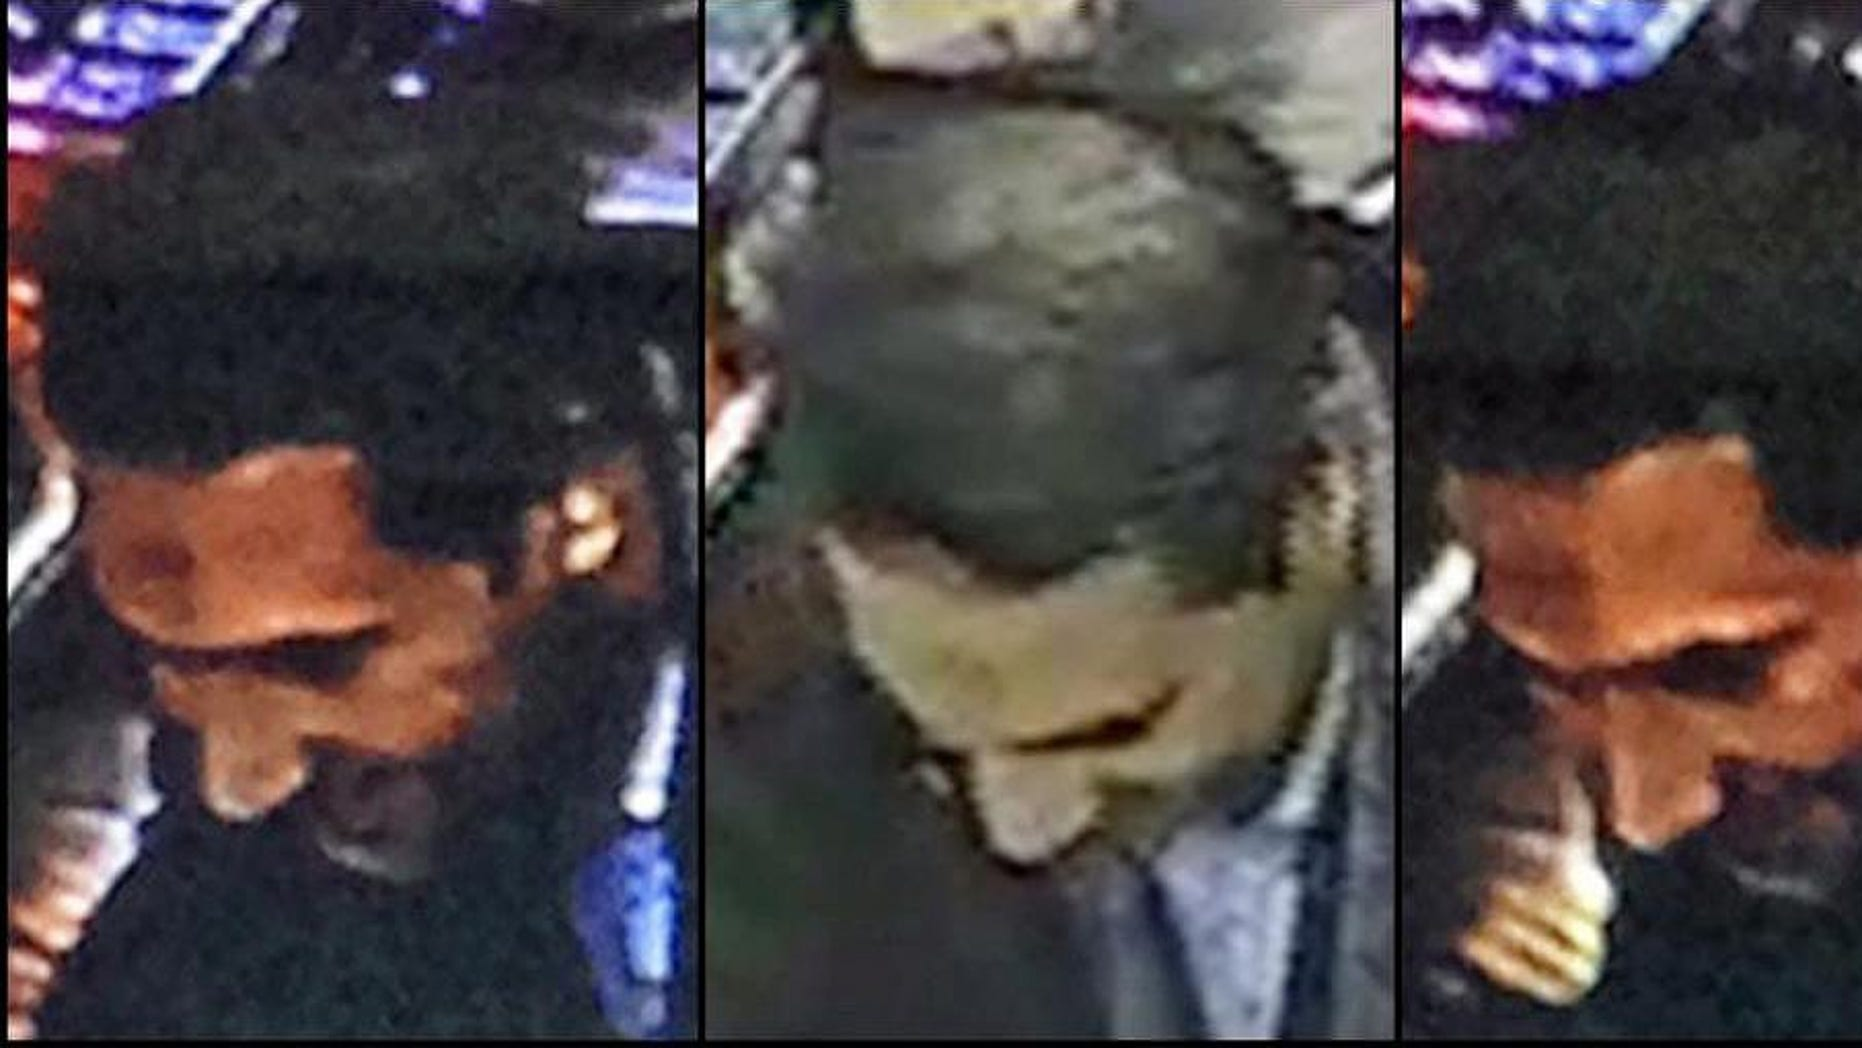 FILE - This is an  image provided by the Belgian Federal Police on Monday, March 21, 2016, a combo photograph shows Najim Laachraoui, who was previously identified in a false passport as Soufiane Kayal by Belgium Federal Police, during a money transfer on Nov. 17, 2015 in a Western Union bank in the Brussels region of Belgium. The lawyer for two former French hostages says the man who blew himself up at Brussels Airport on March 22 was once a jailor for the Islamic State group. Marie-Laure Ingouf says Najim Laachraoui, who built the explosive belts used in the assaults on both capitals and blew himself up at Brussels Airport on March 22, was one of several jihadis who held the radical Muslim group's hostages between 2013 and 2014. . (Belgian Federal Police via AP)